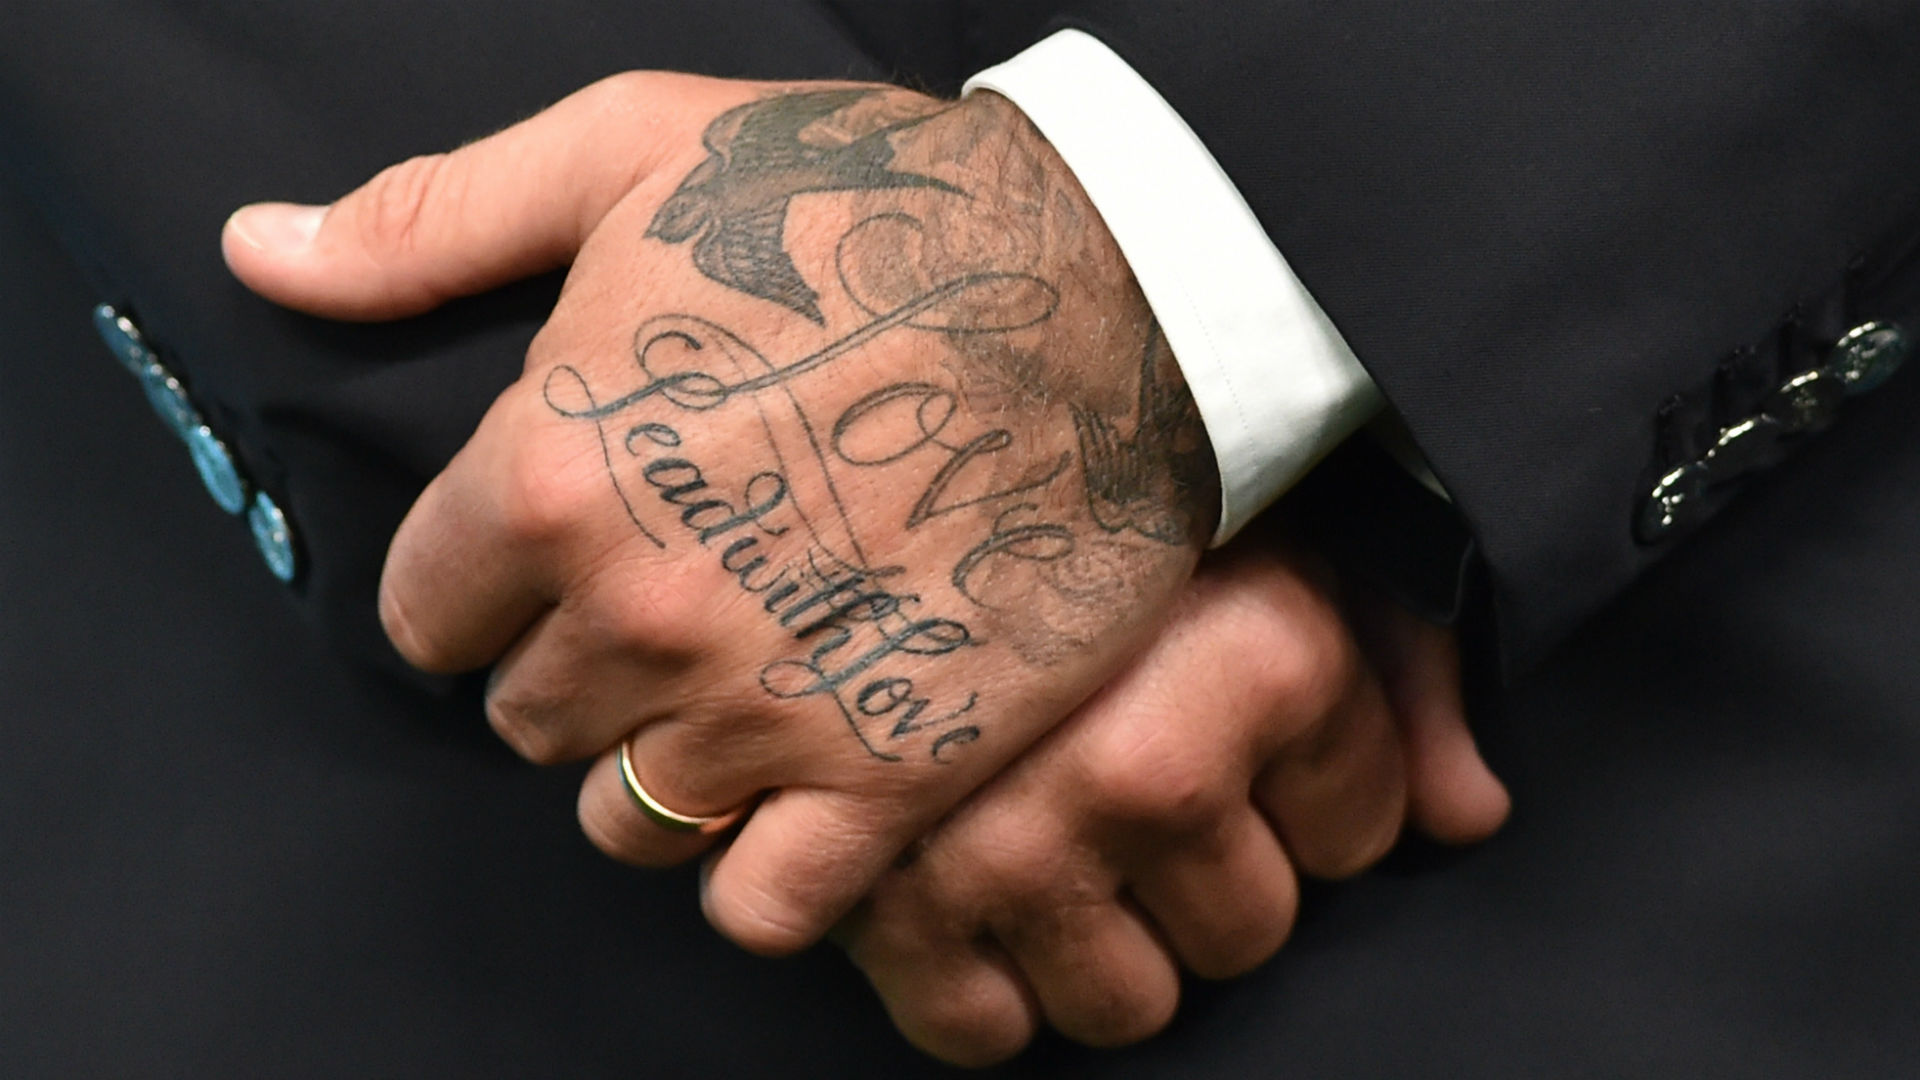 David Beckham Chinese Tattoo Meaning